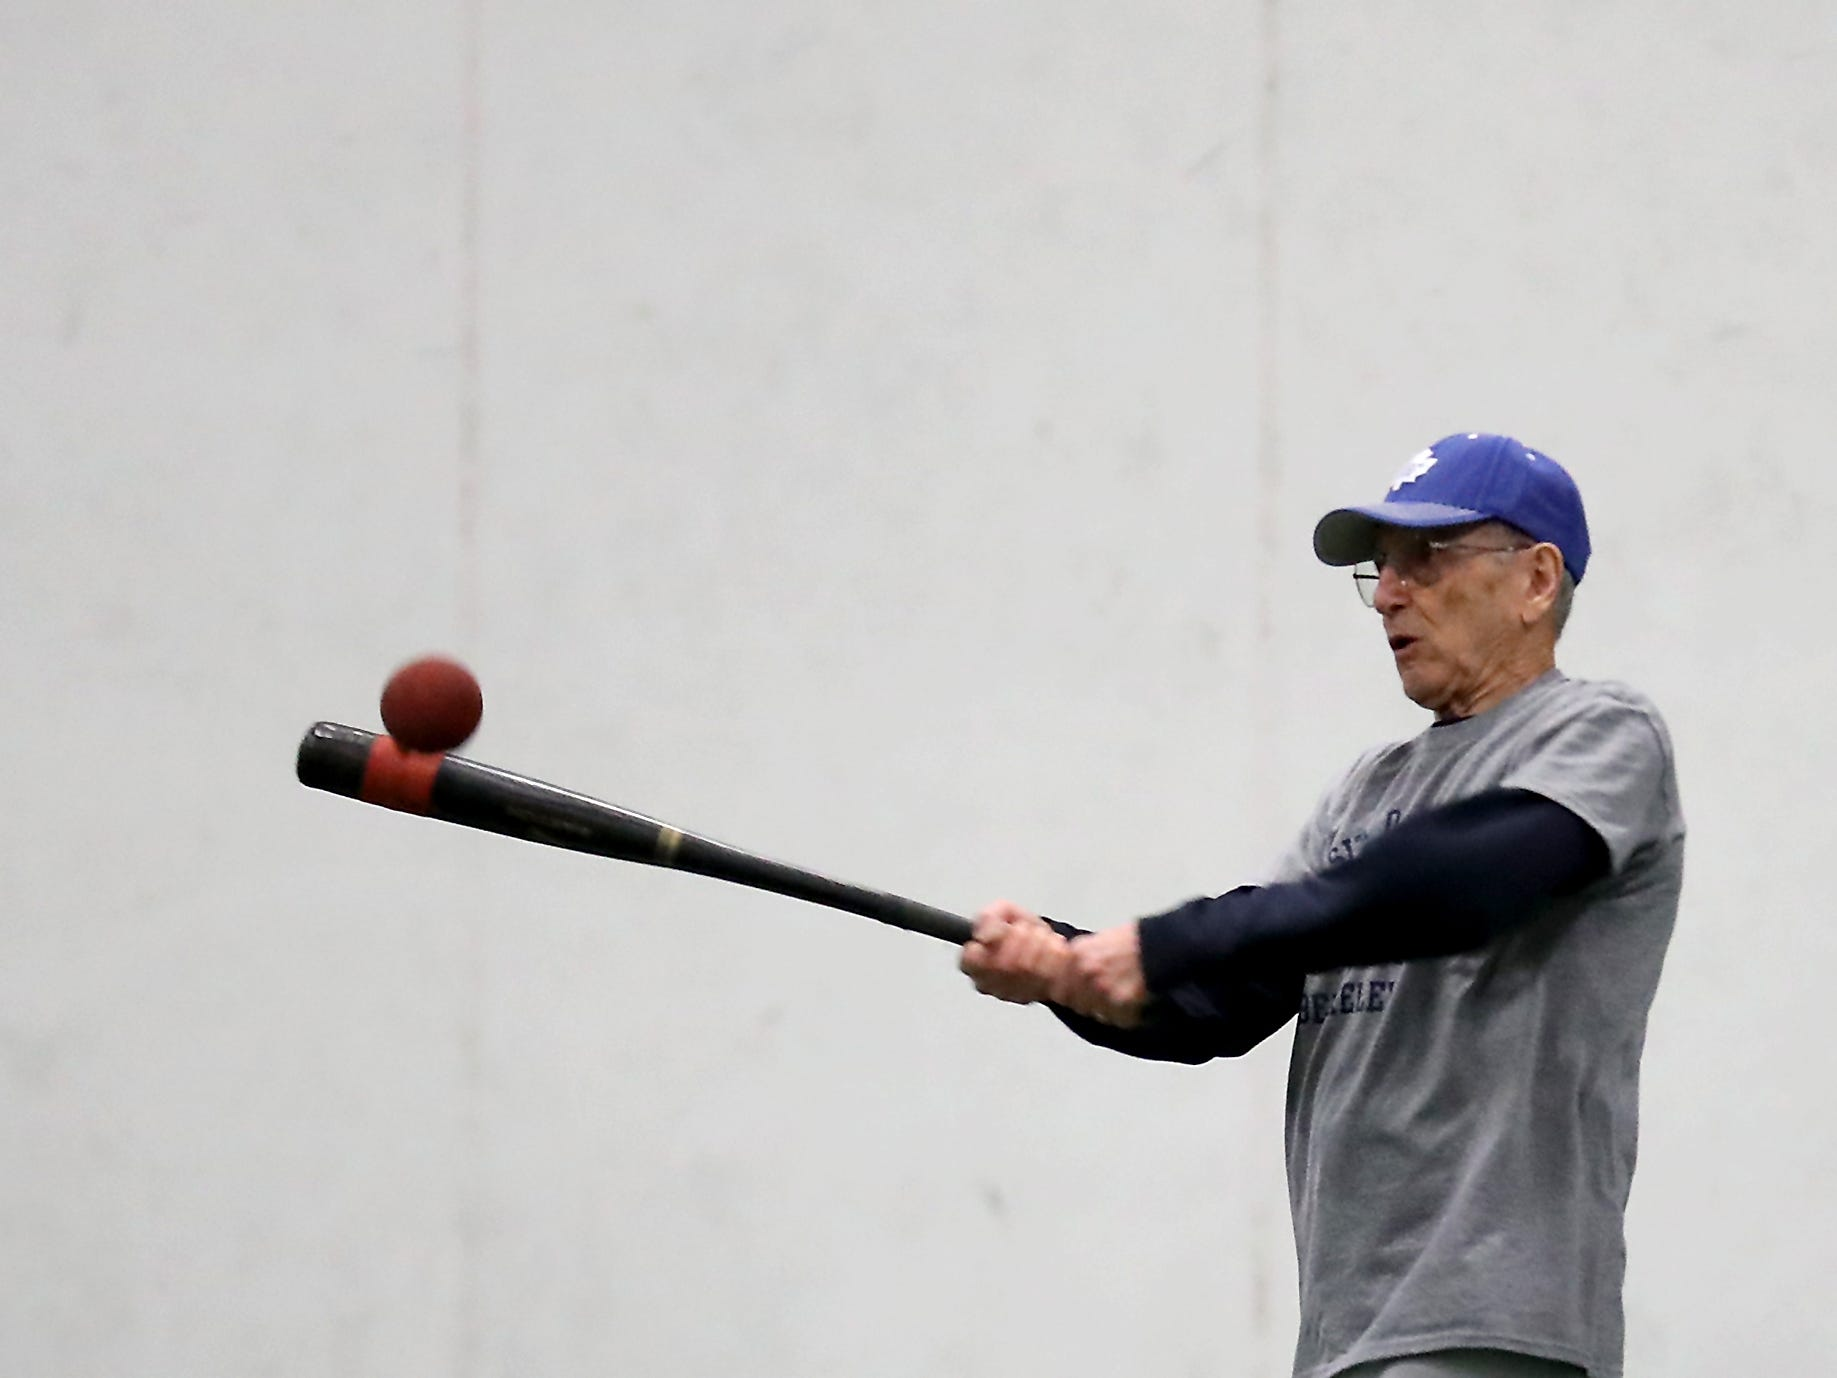 Lew Bruser, 90, bats during softball practice at Olympic Soccer Center in Bremerton on Friday, March 8, 2019.